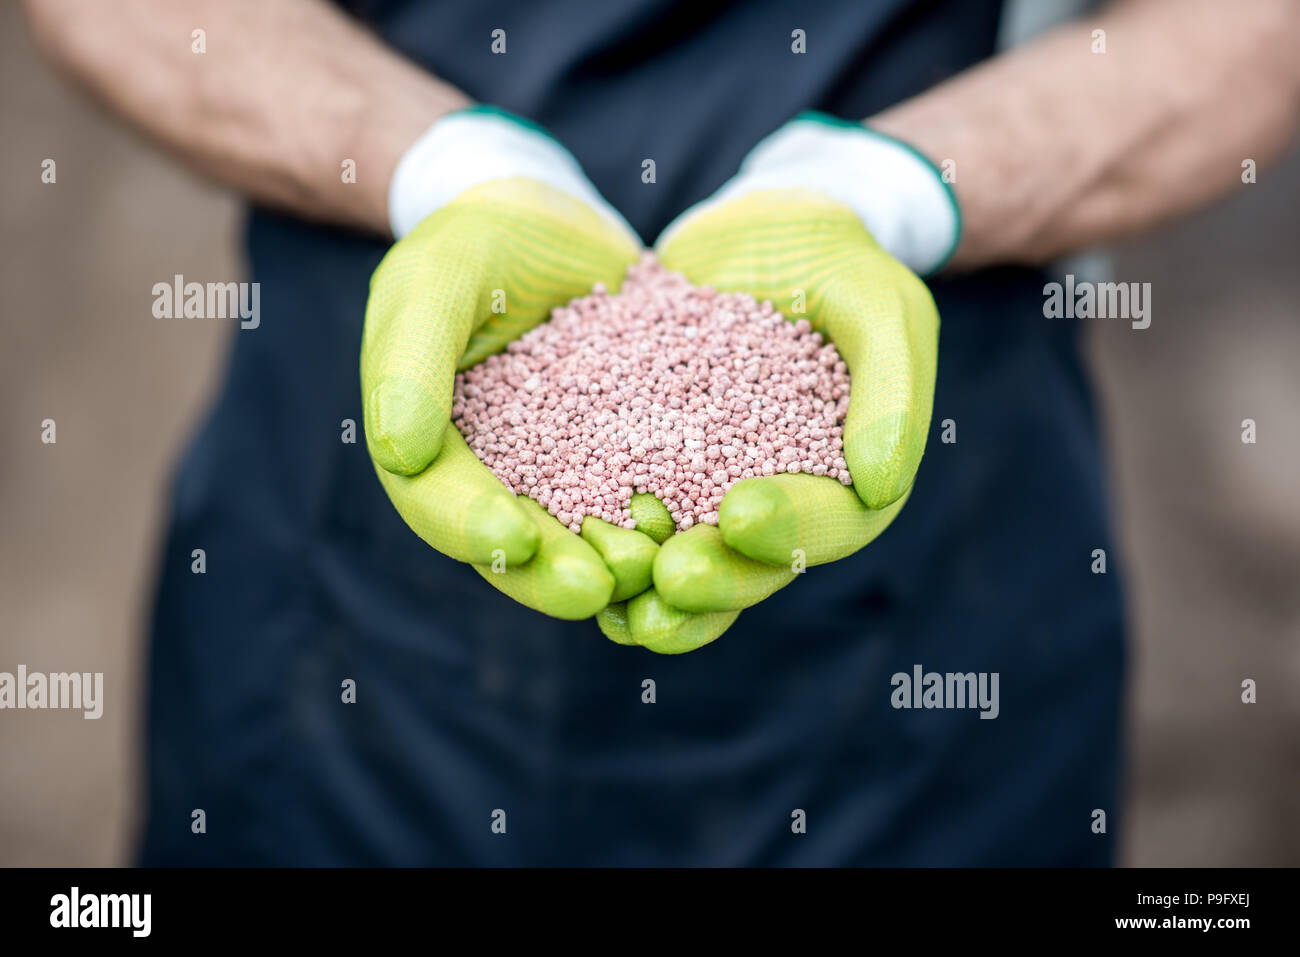 Holding mineral fertilizers - Stock Image